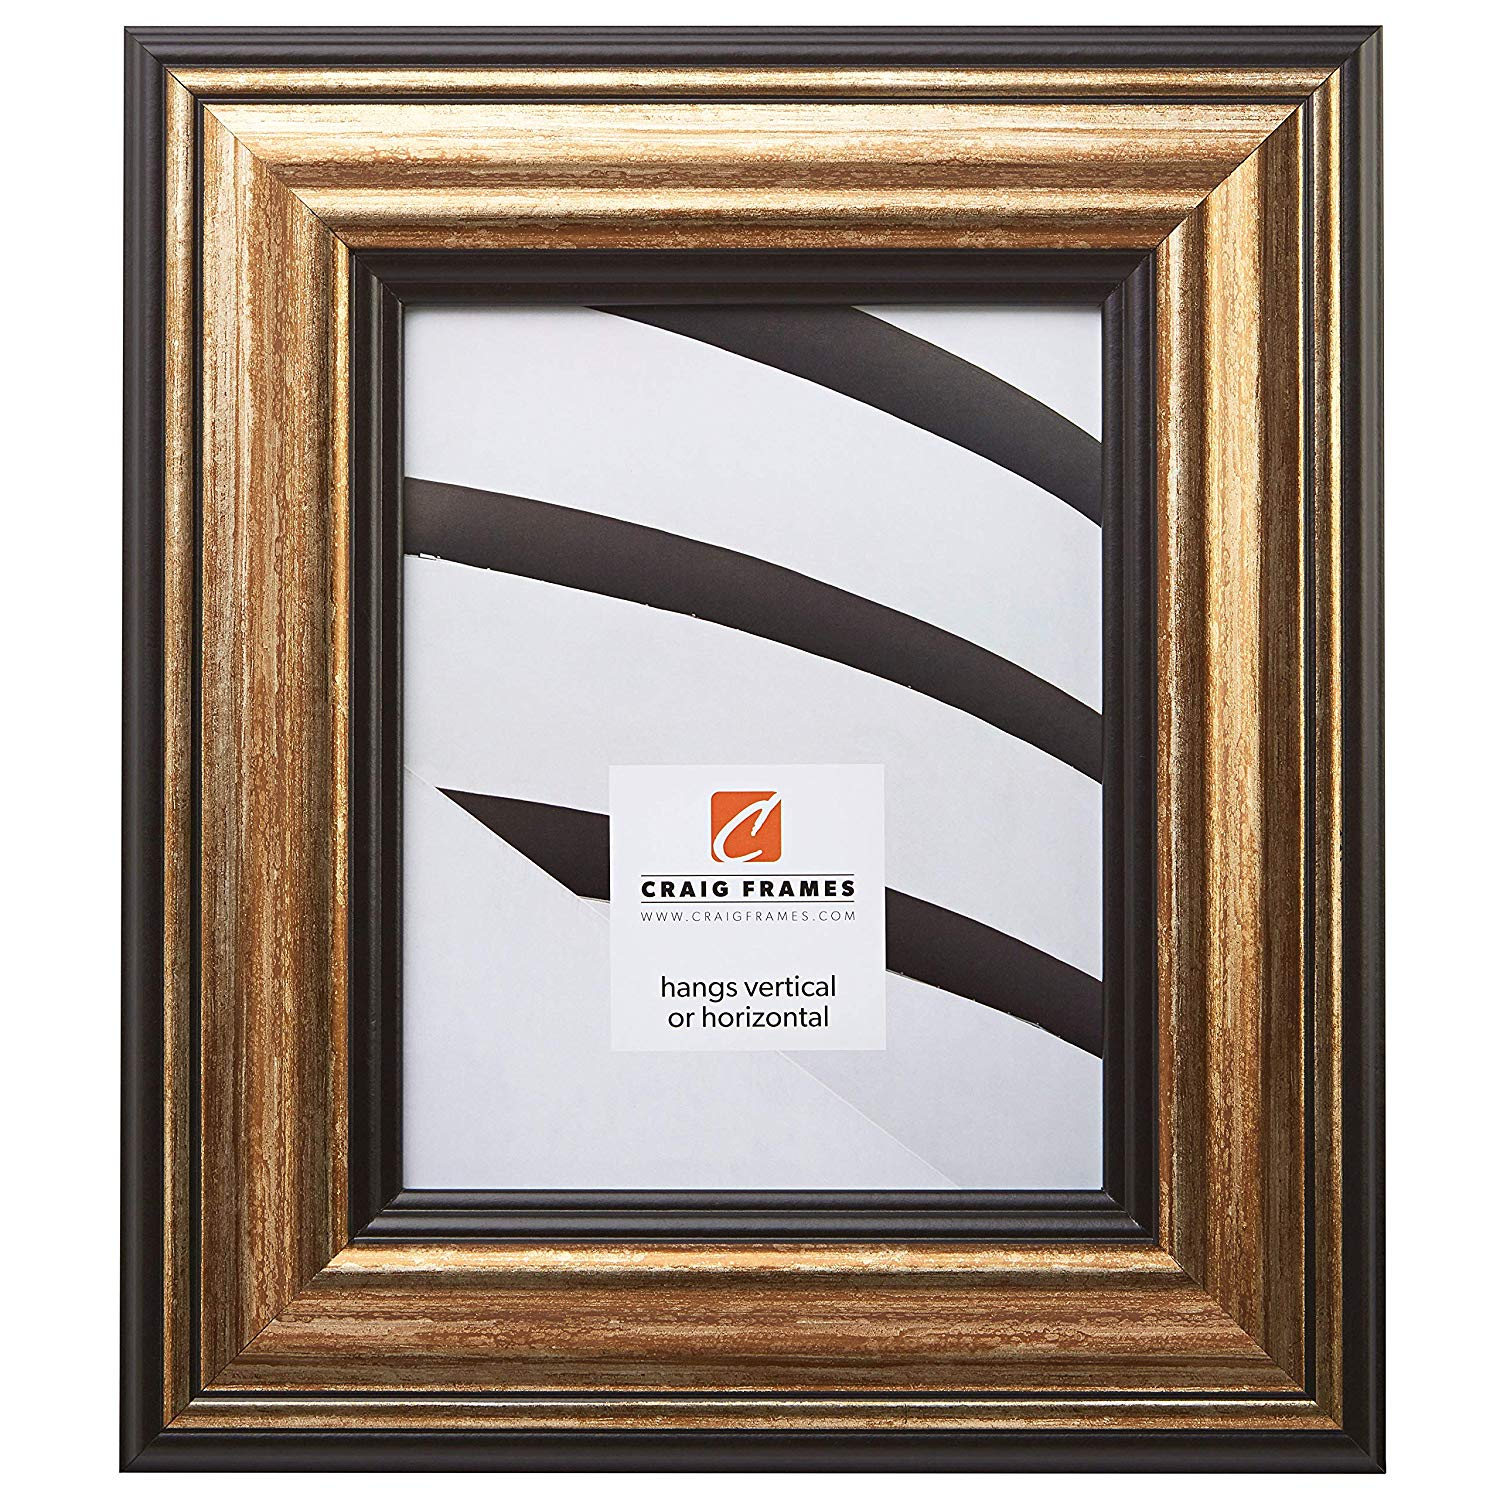 Cheap 35 X 20 Frame, find 35 X 20 Frame deals on line at Alibaba.com